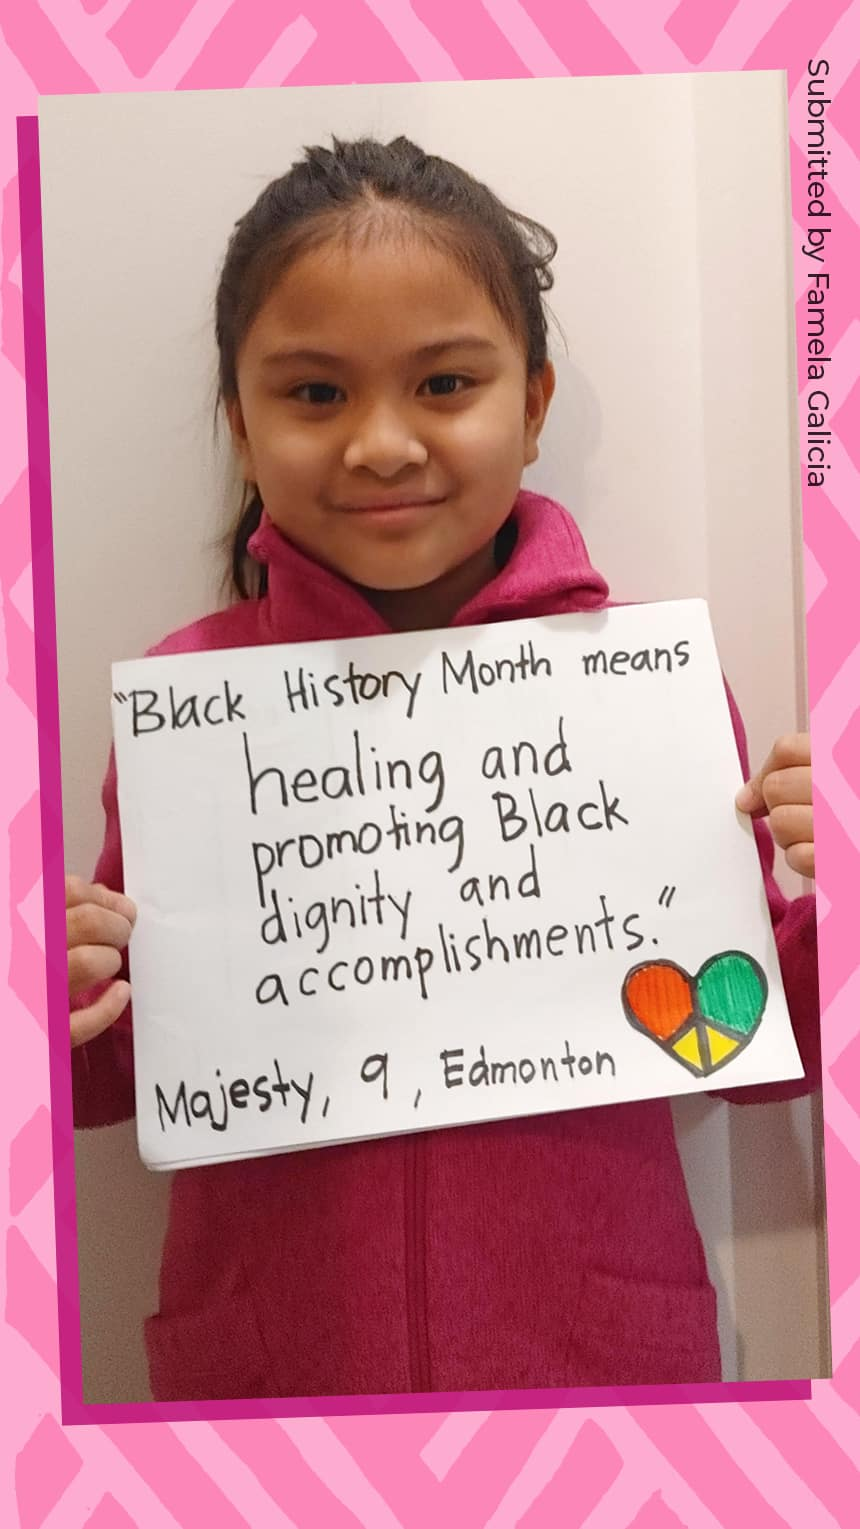 """""""Black History Month means healing and promoting dignity and accomplishments."""" Majesty  Age 9 Edmonton, Alberta"""